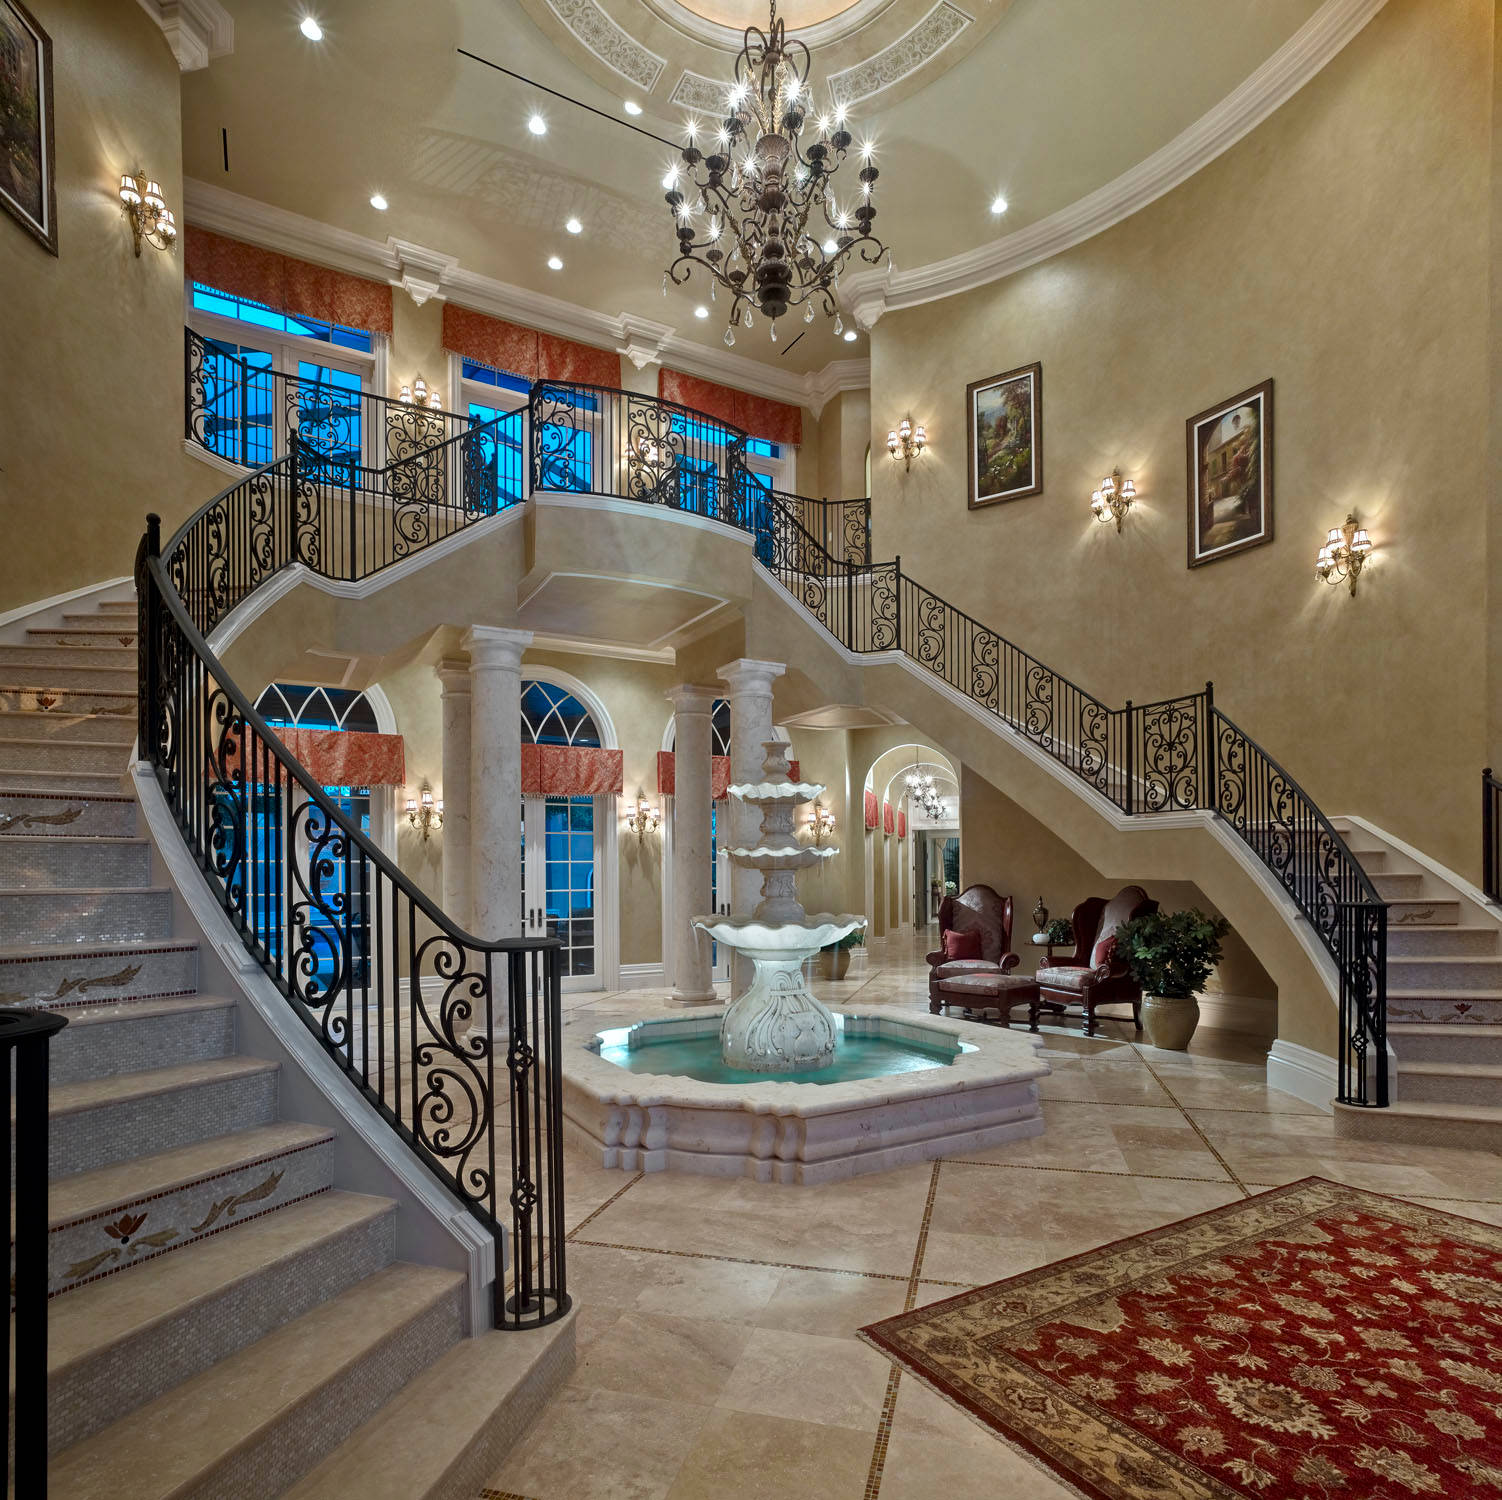 Mediterranean Staircase Plus Arched Window And Beige Faux Finish Wall With Beige Tile Floor And Ceiling Design Plus Ceiling Medallion Also Indoor Fountains And Metal Chandelier